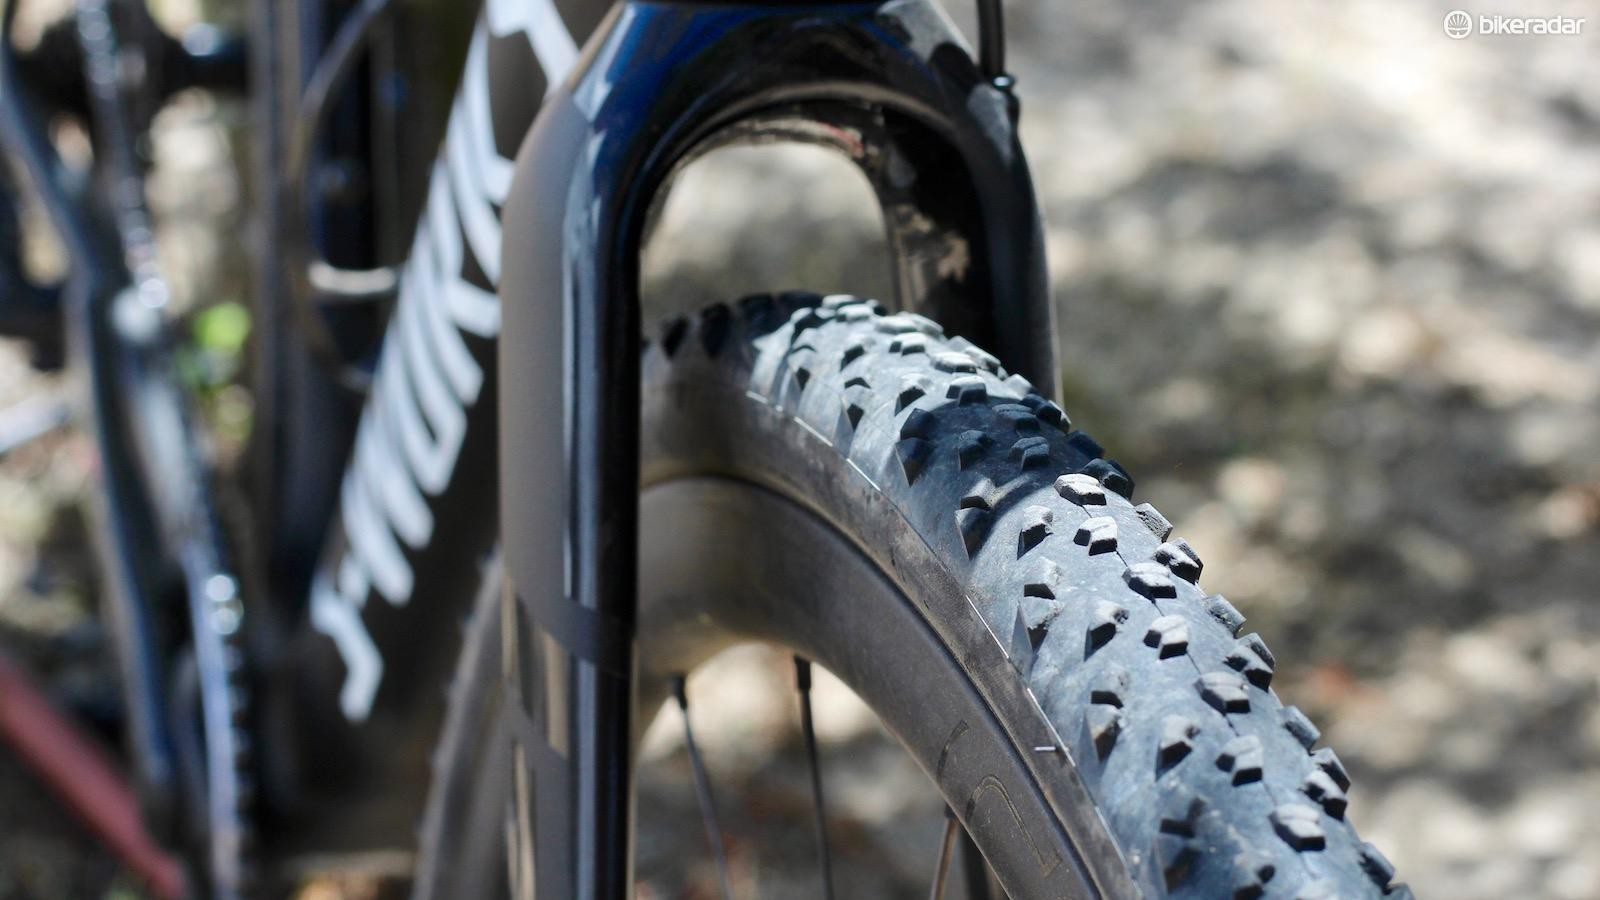 Complementing the disc brake design with massive clearance is sure to make 'crossers happy